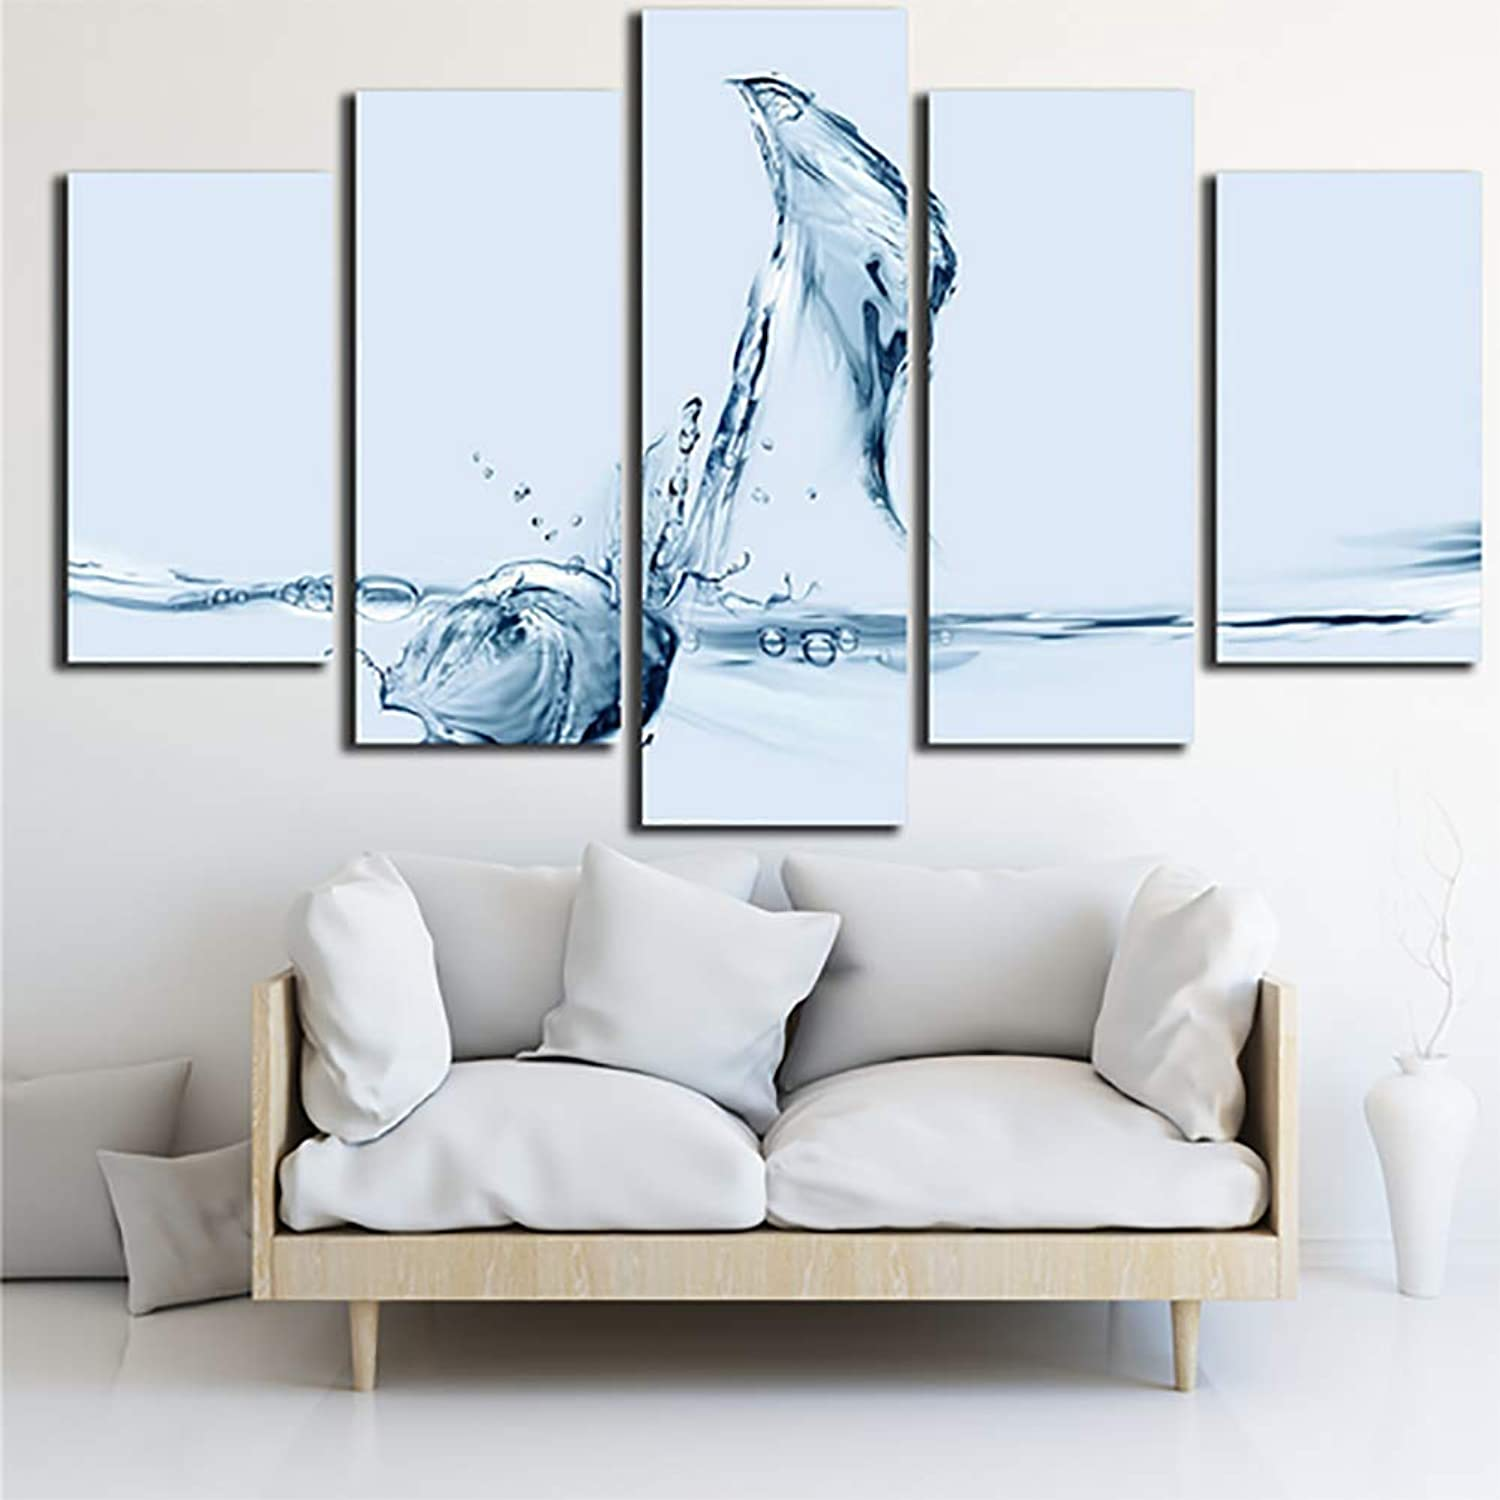 Print 5 Panel Water Note Pictures Modern Wall Art Painting Poster